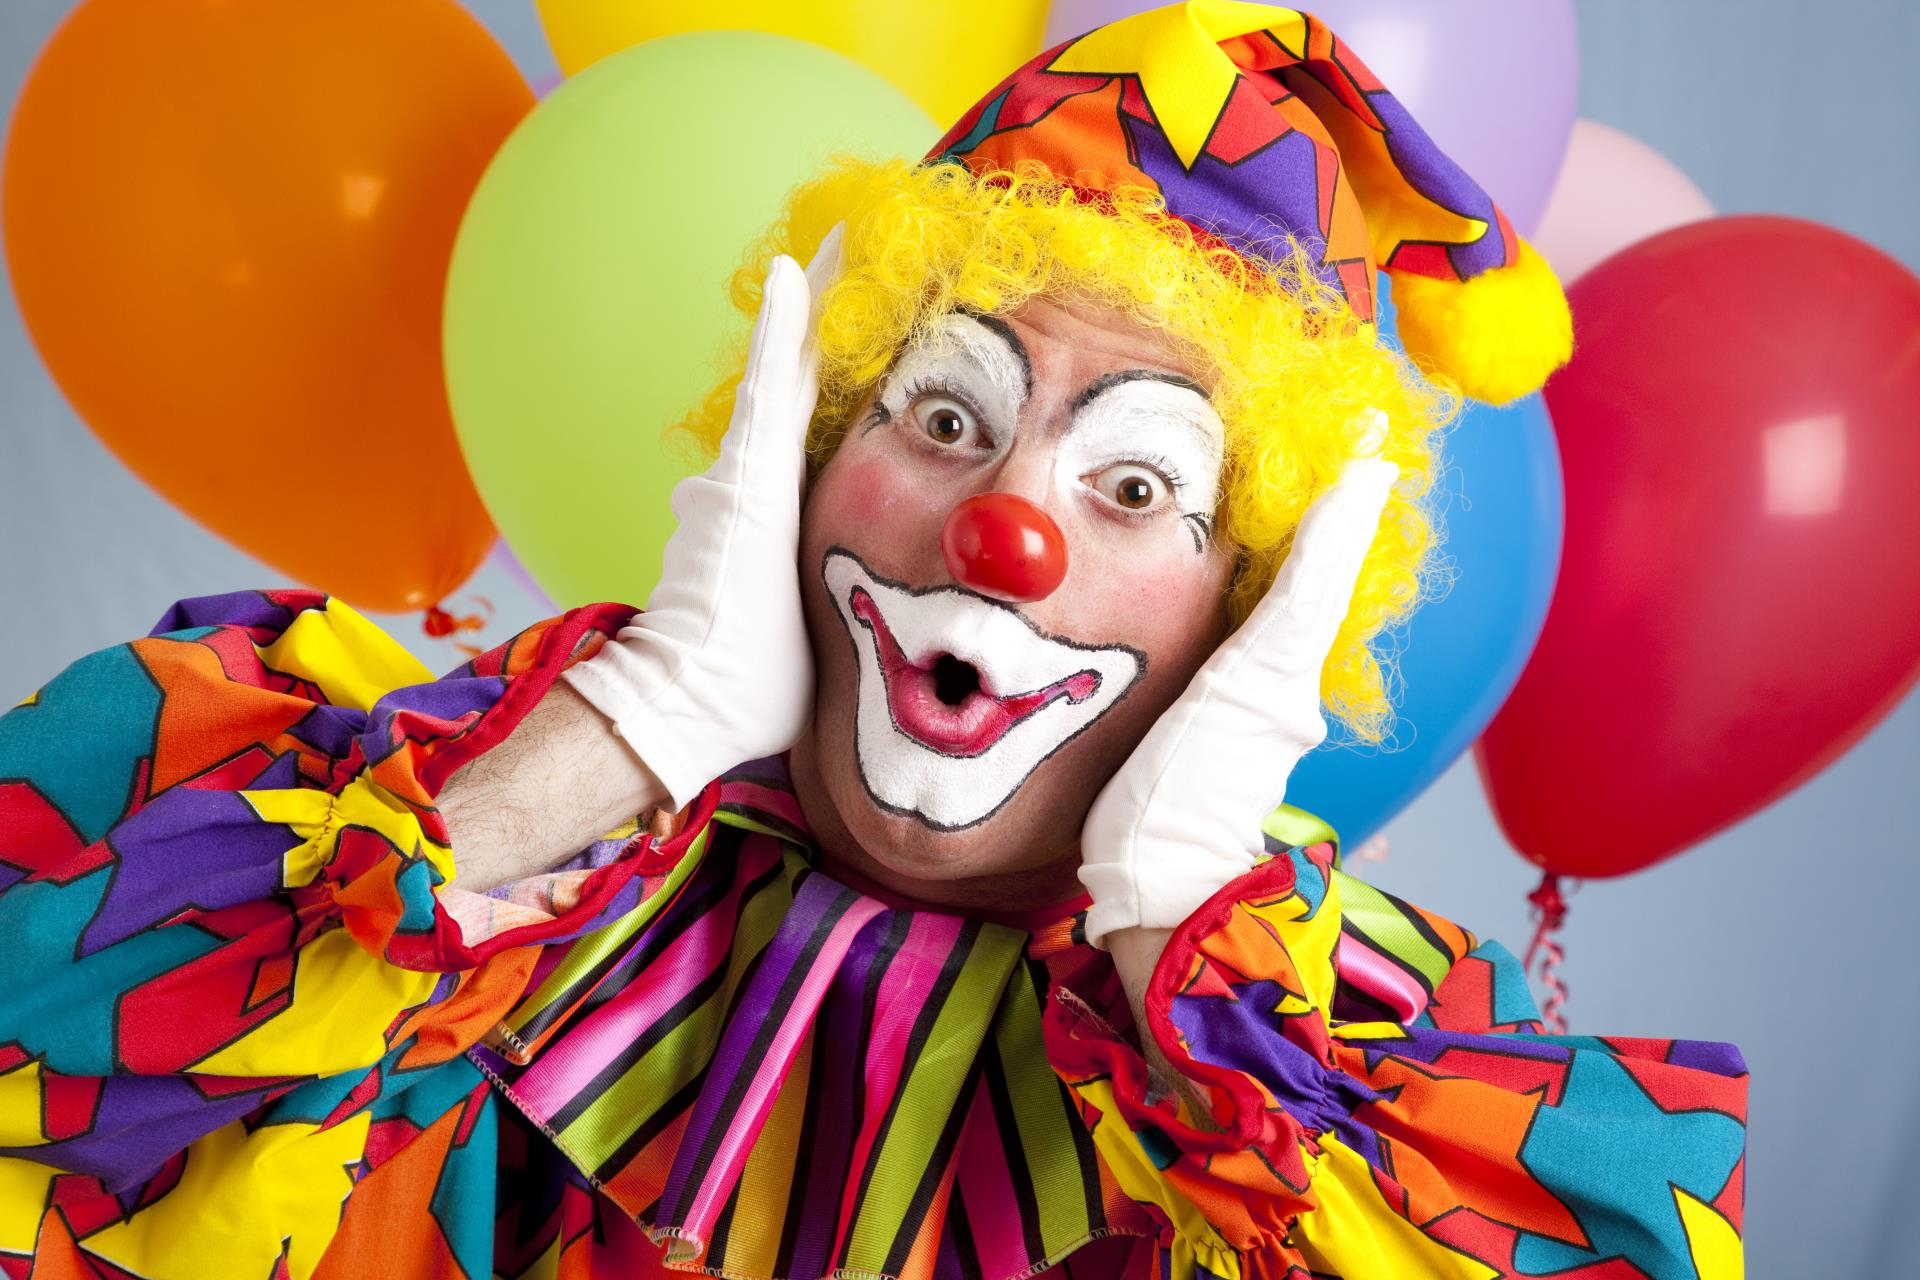 Colorful male clown standing in front of balloons